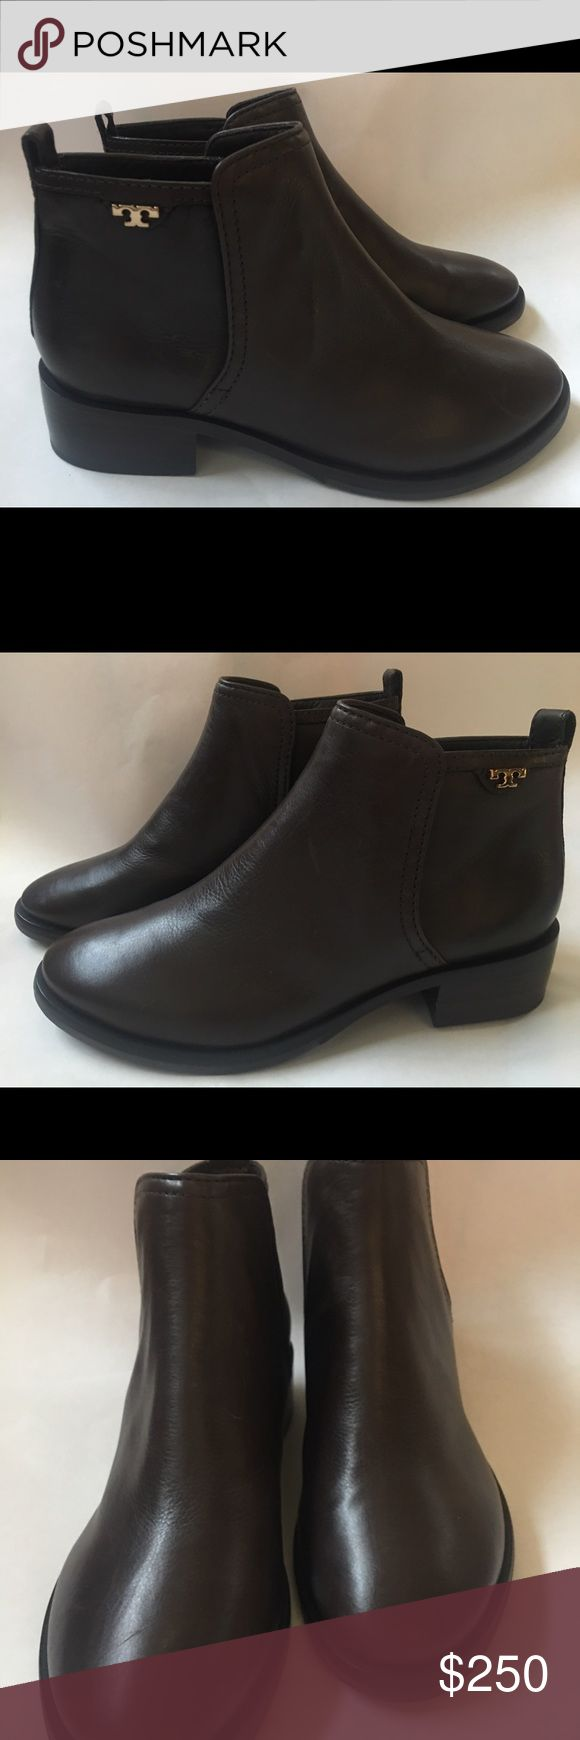 Tory Burch brown leather ankle boot 6.5 New! New without box.  I planned to keep and tossed the box. Size 6.5 dark brown Tory Burch Shoes Ankle Boots & Booties